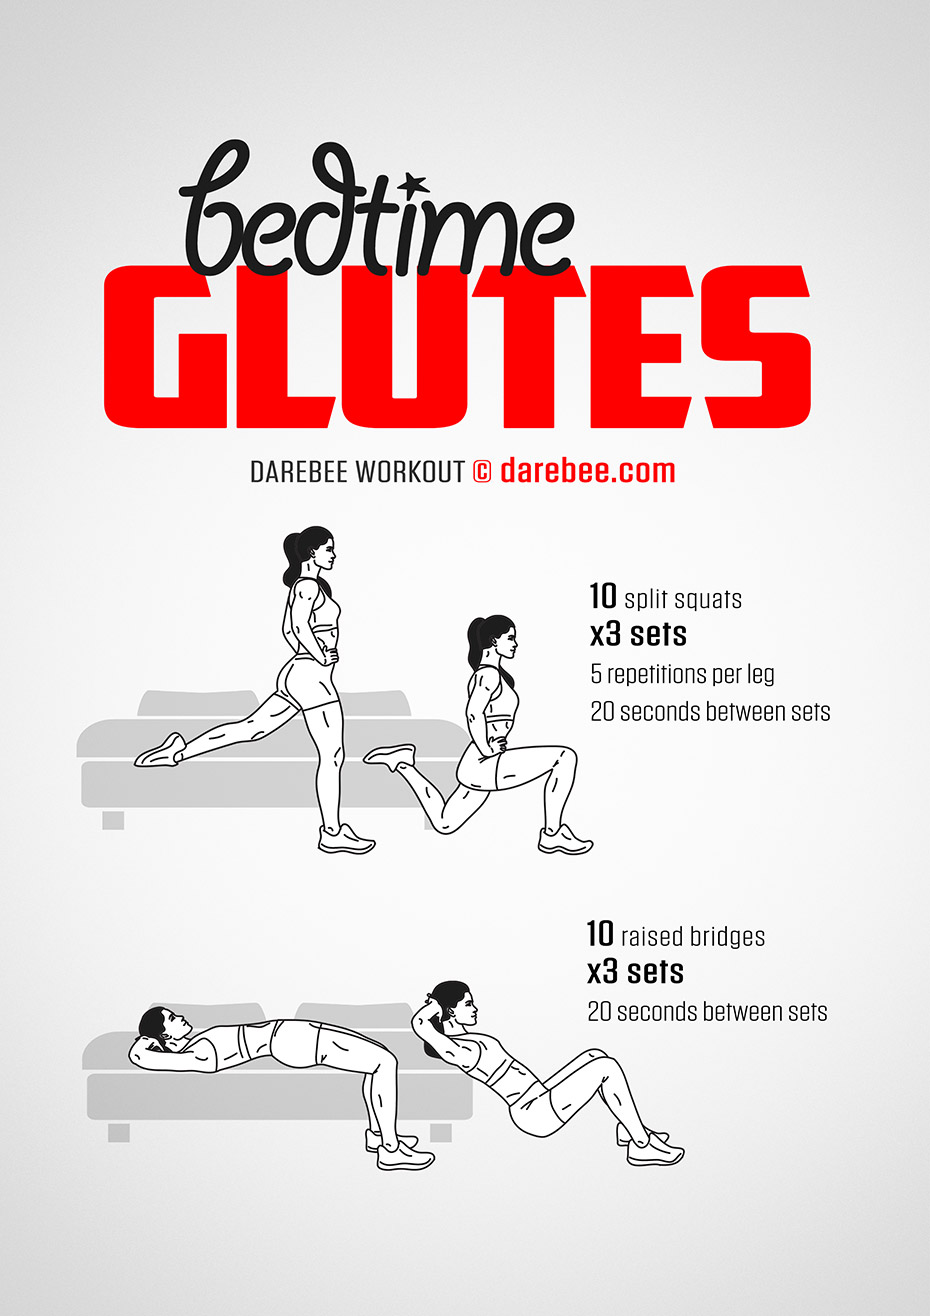 Bedtime Glutes Workout